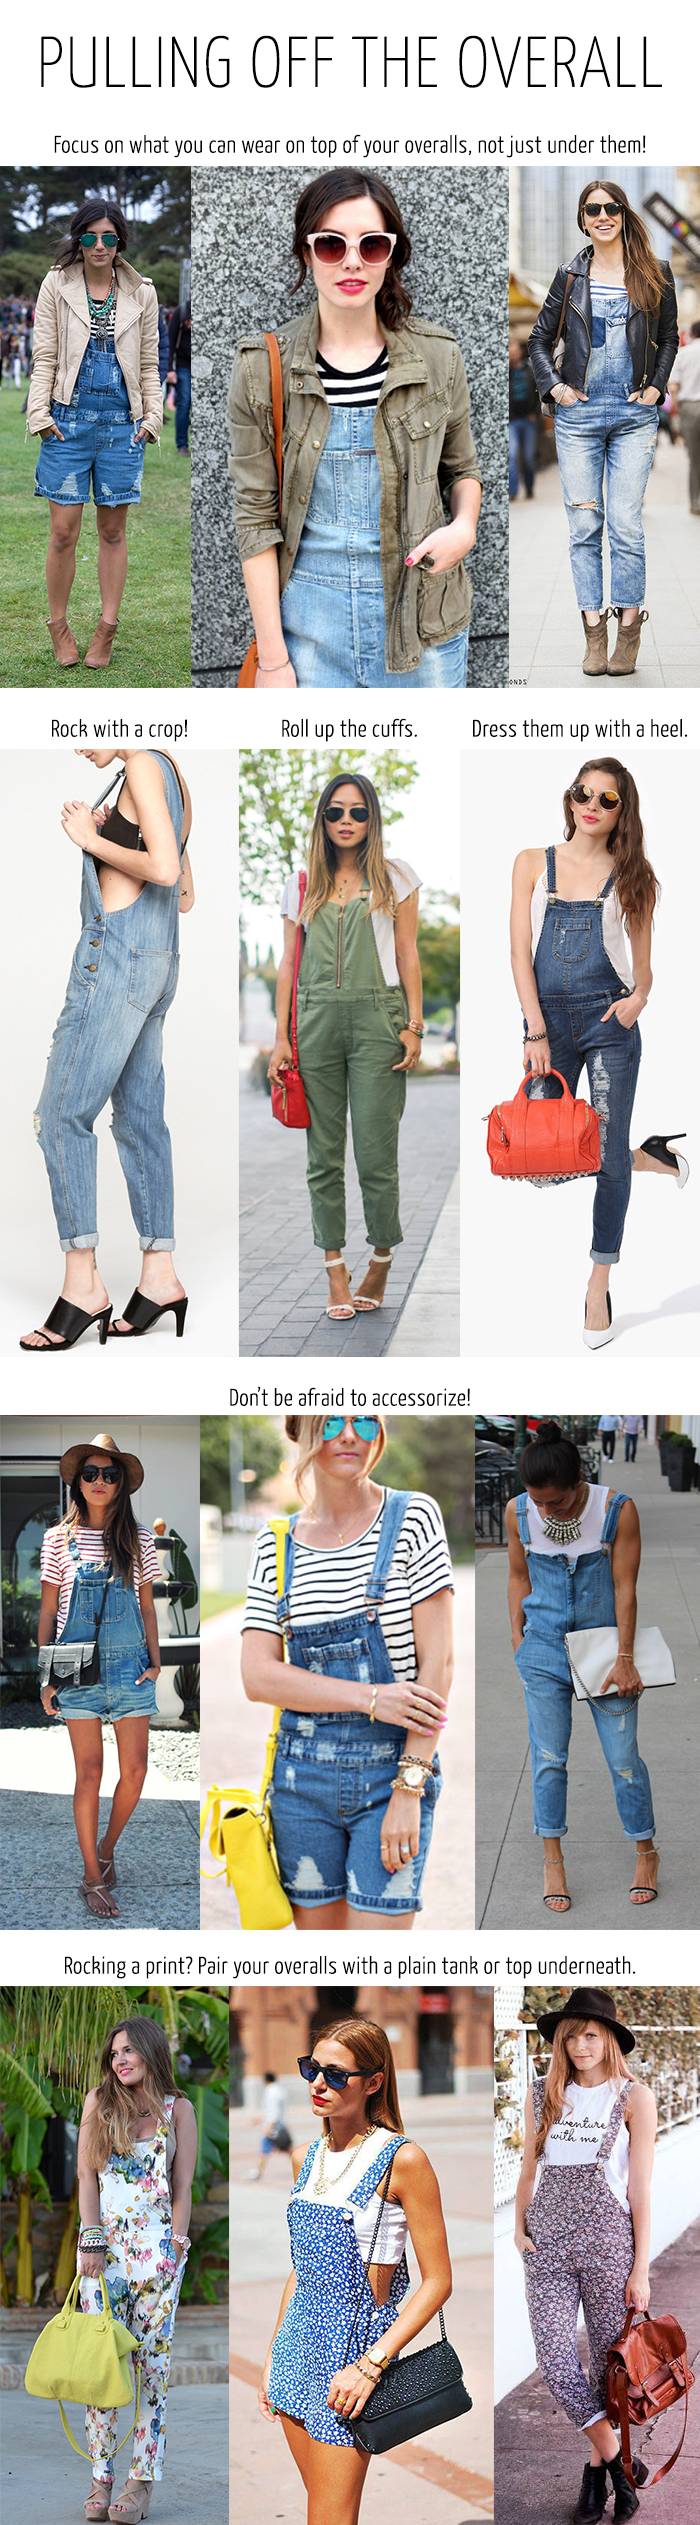 How-to-Wear-Overalls